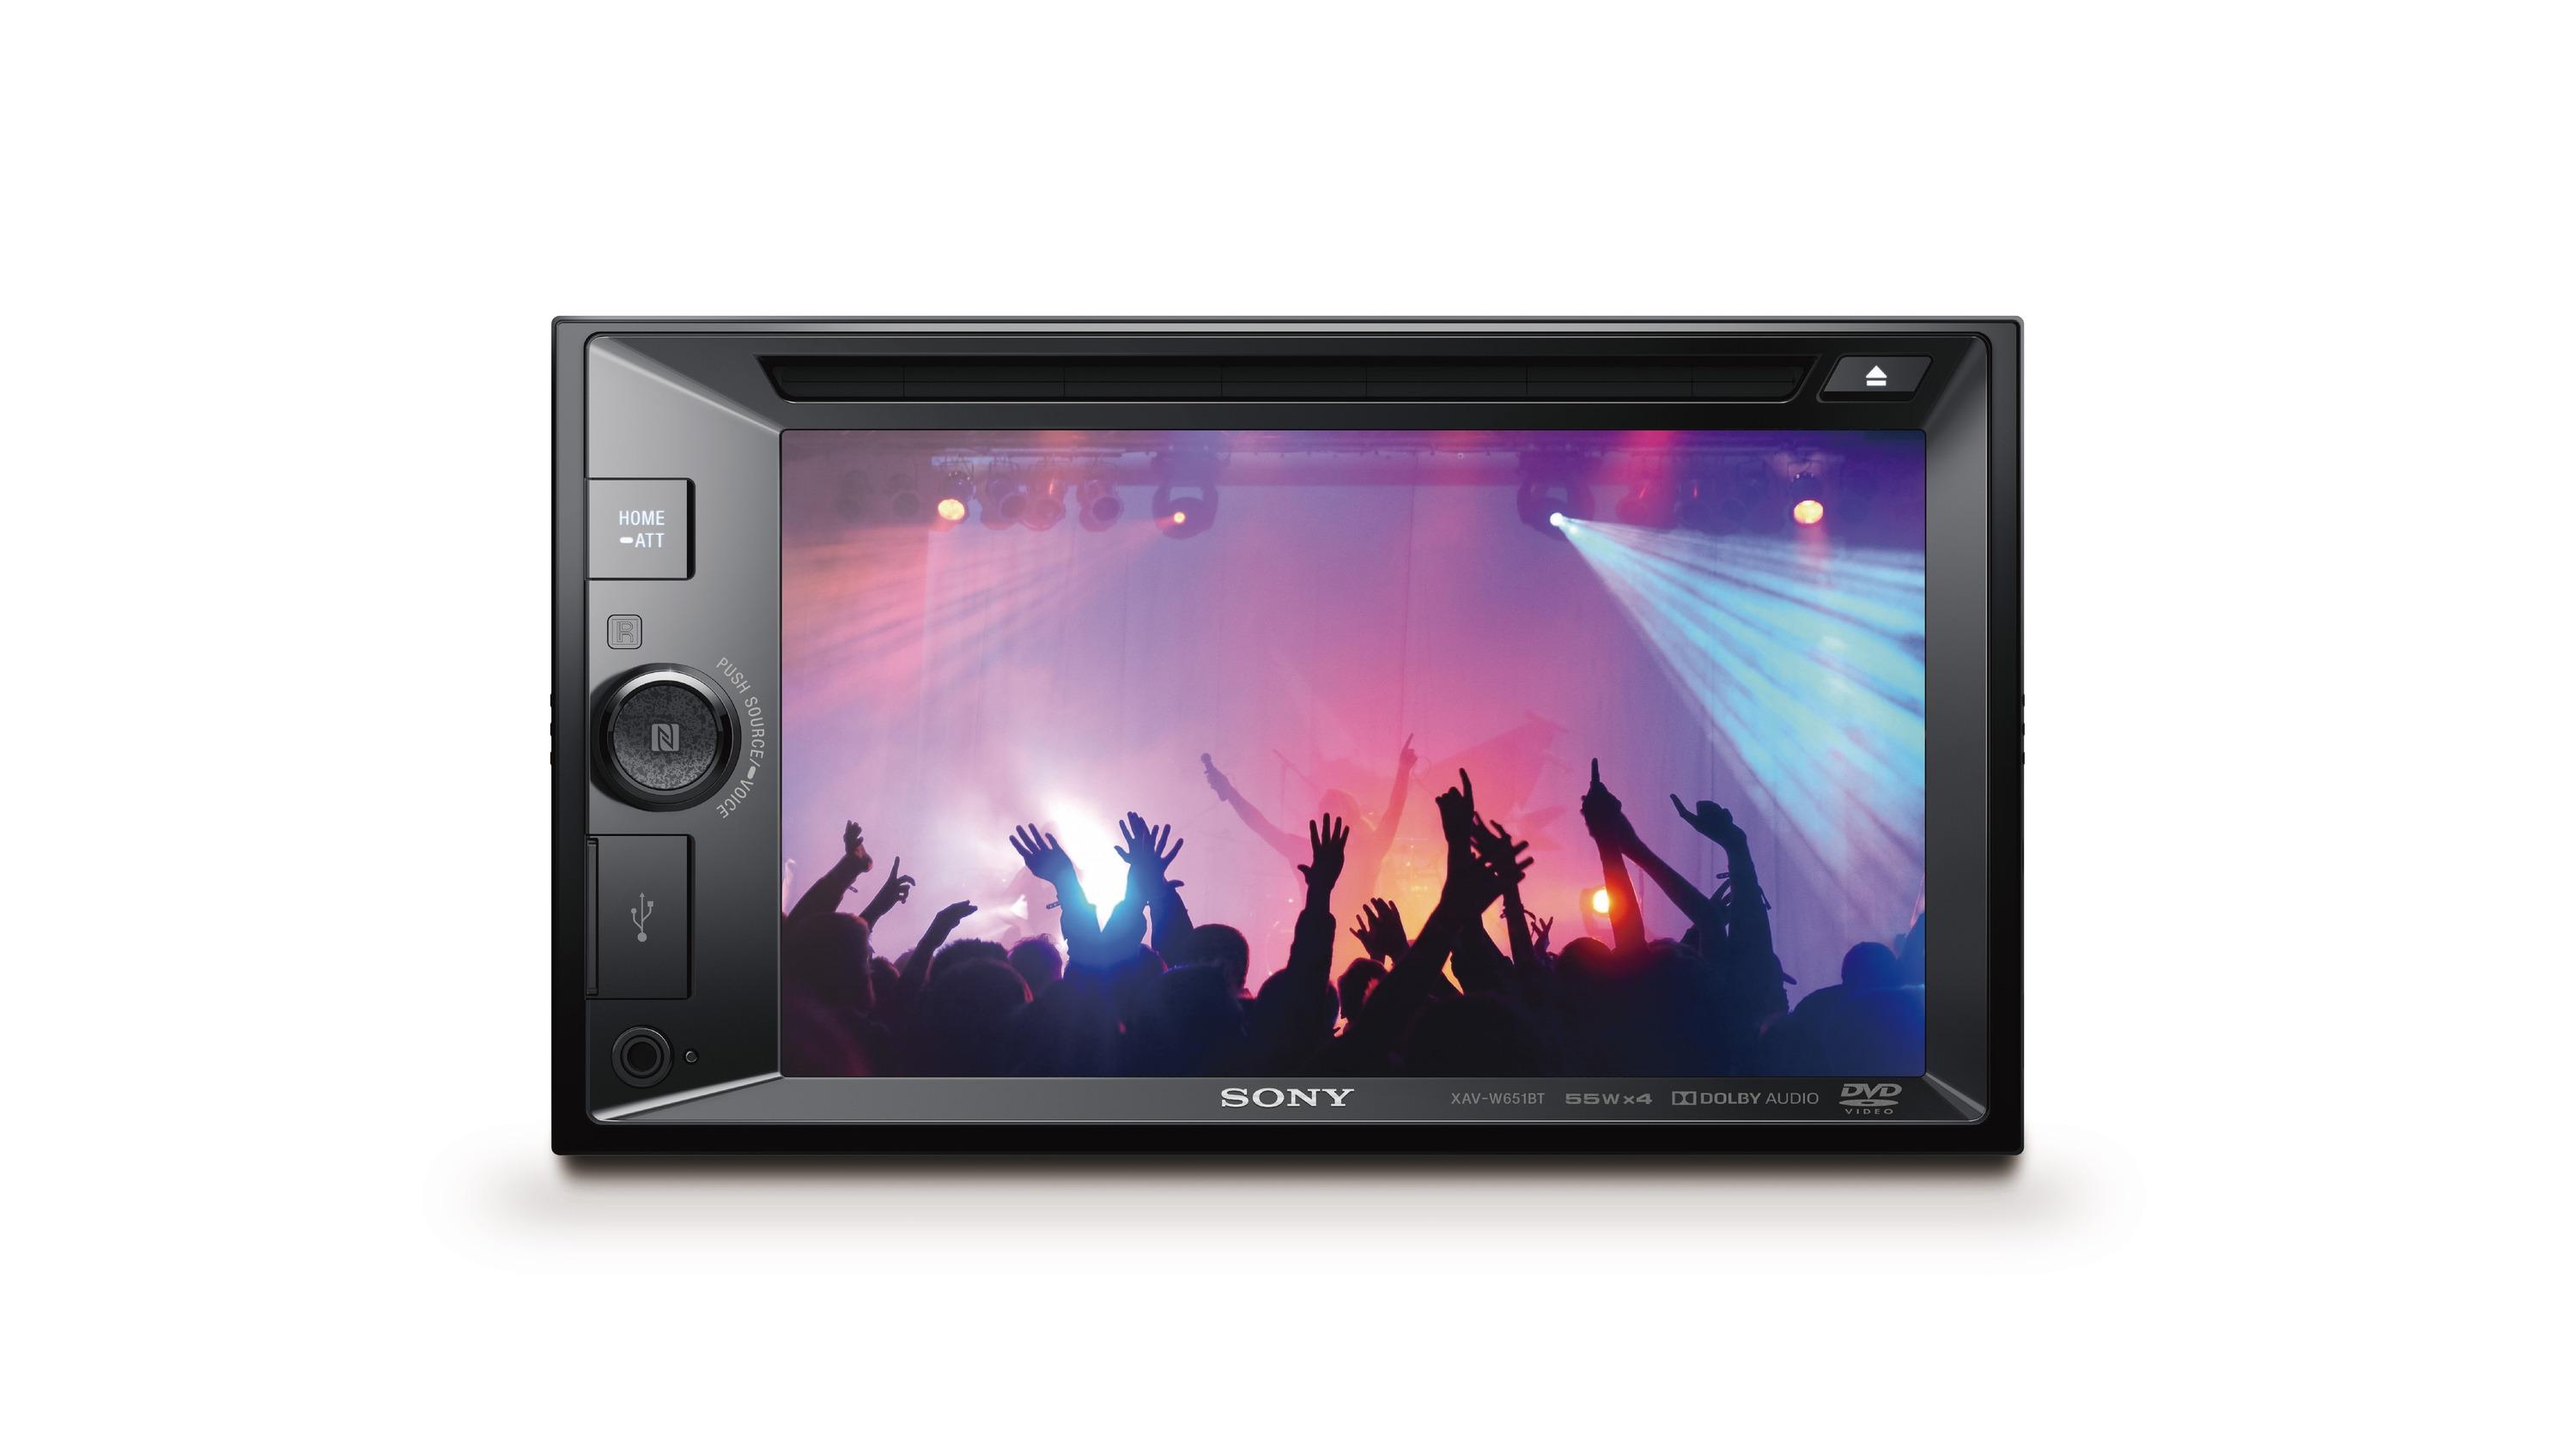 Sony autorádio XAV-651BT dot.display BT/NFC,CD/DVD